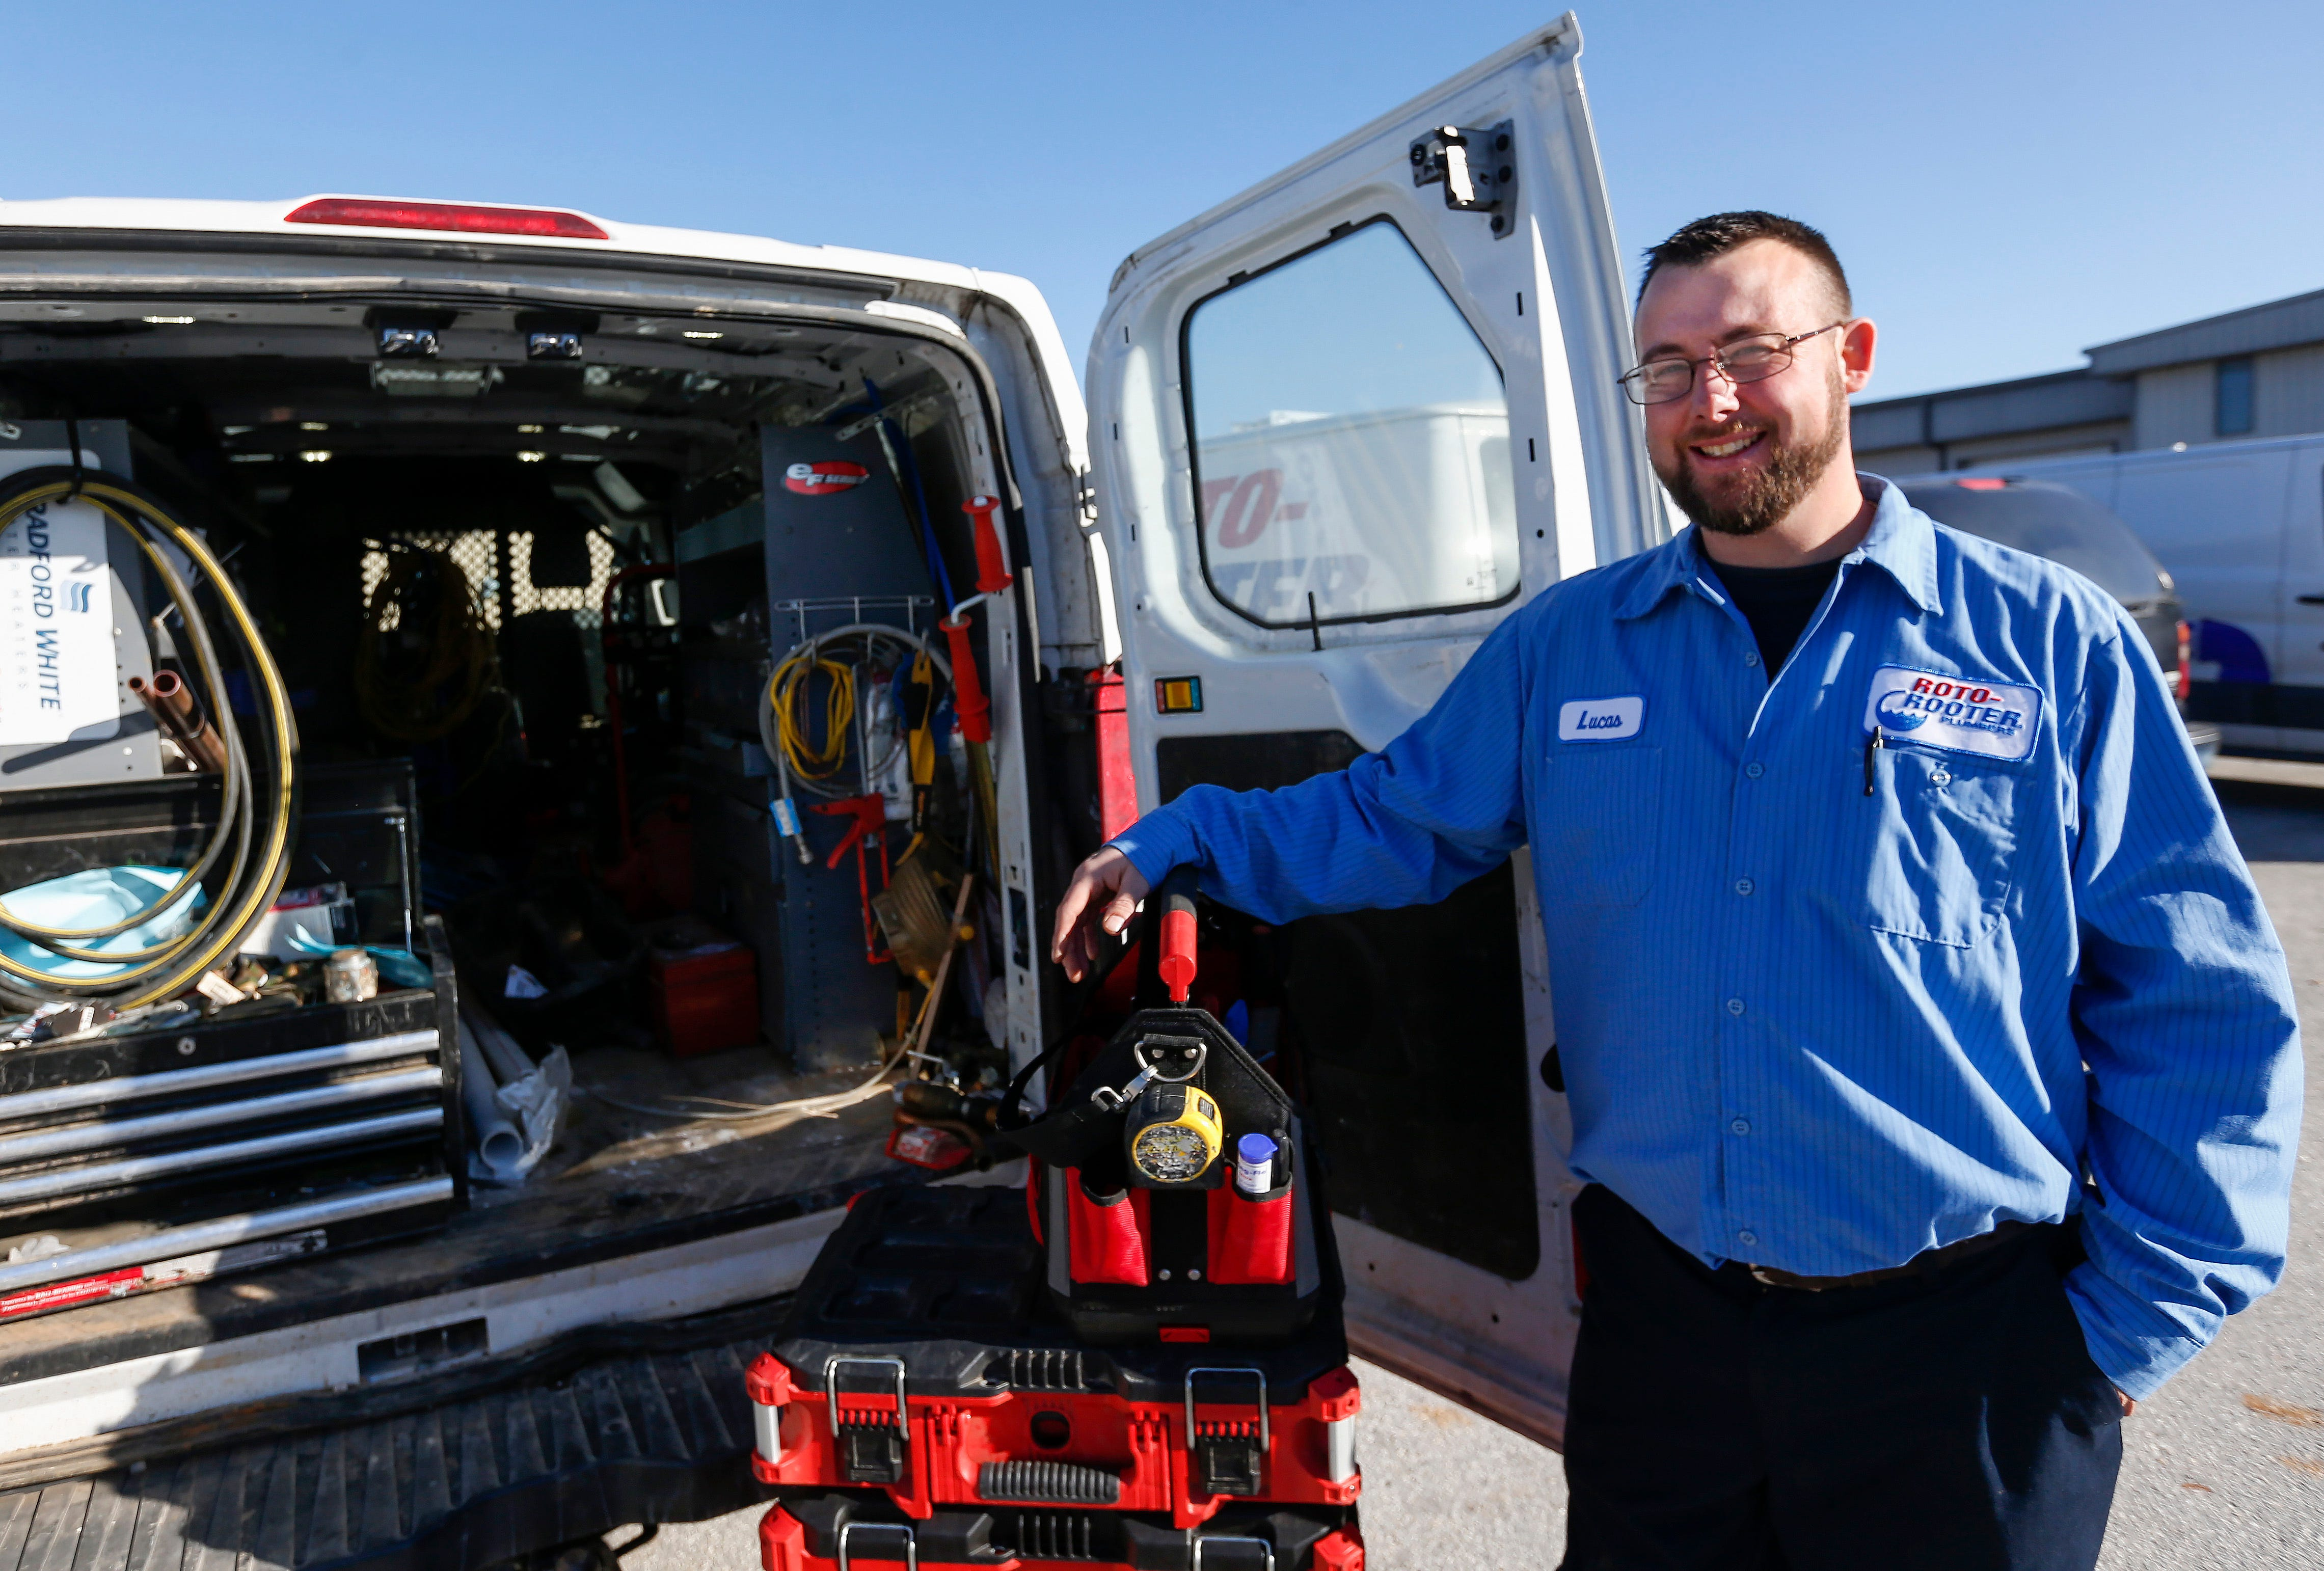 Lucas Thach is a plumber with Roto Rooter Plumbing and Drain Service in Ozark.